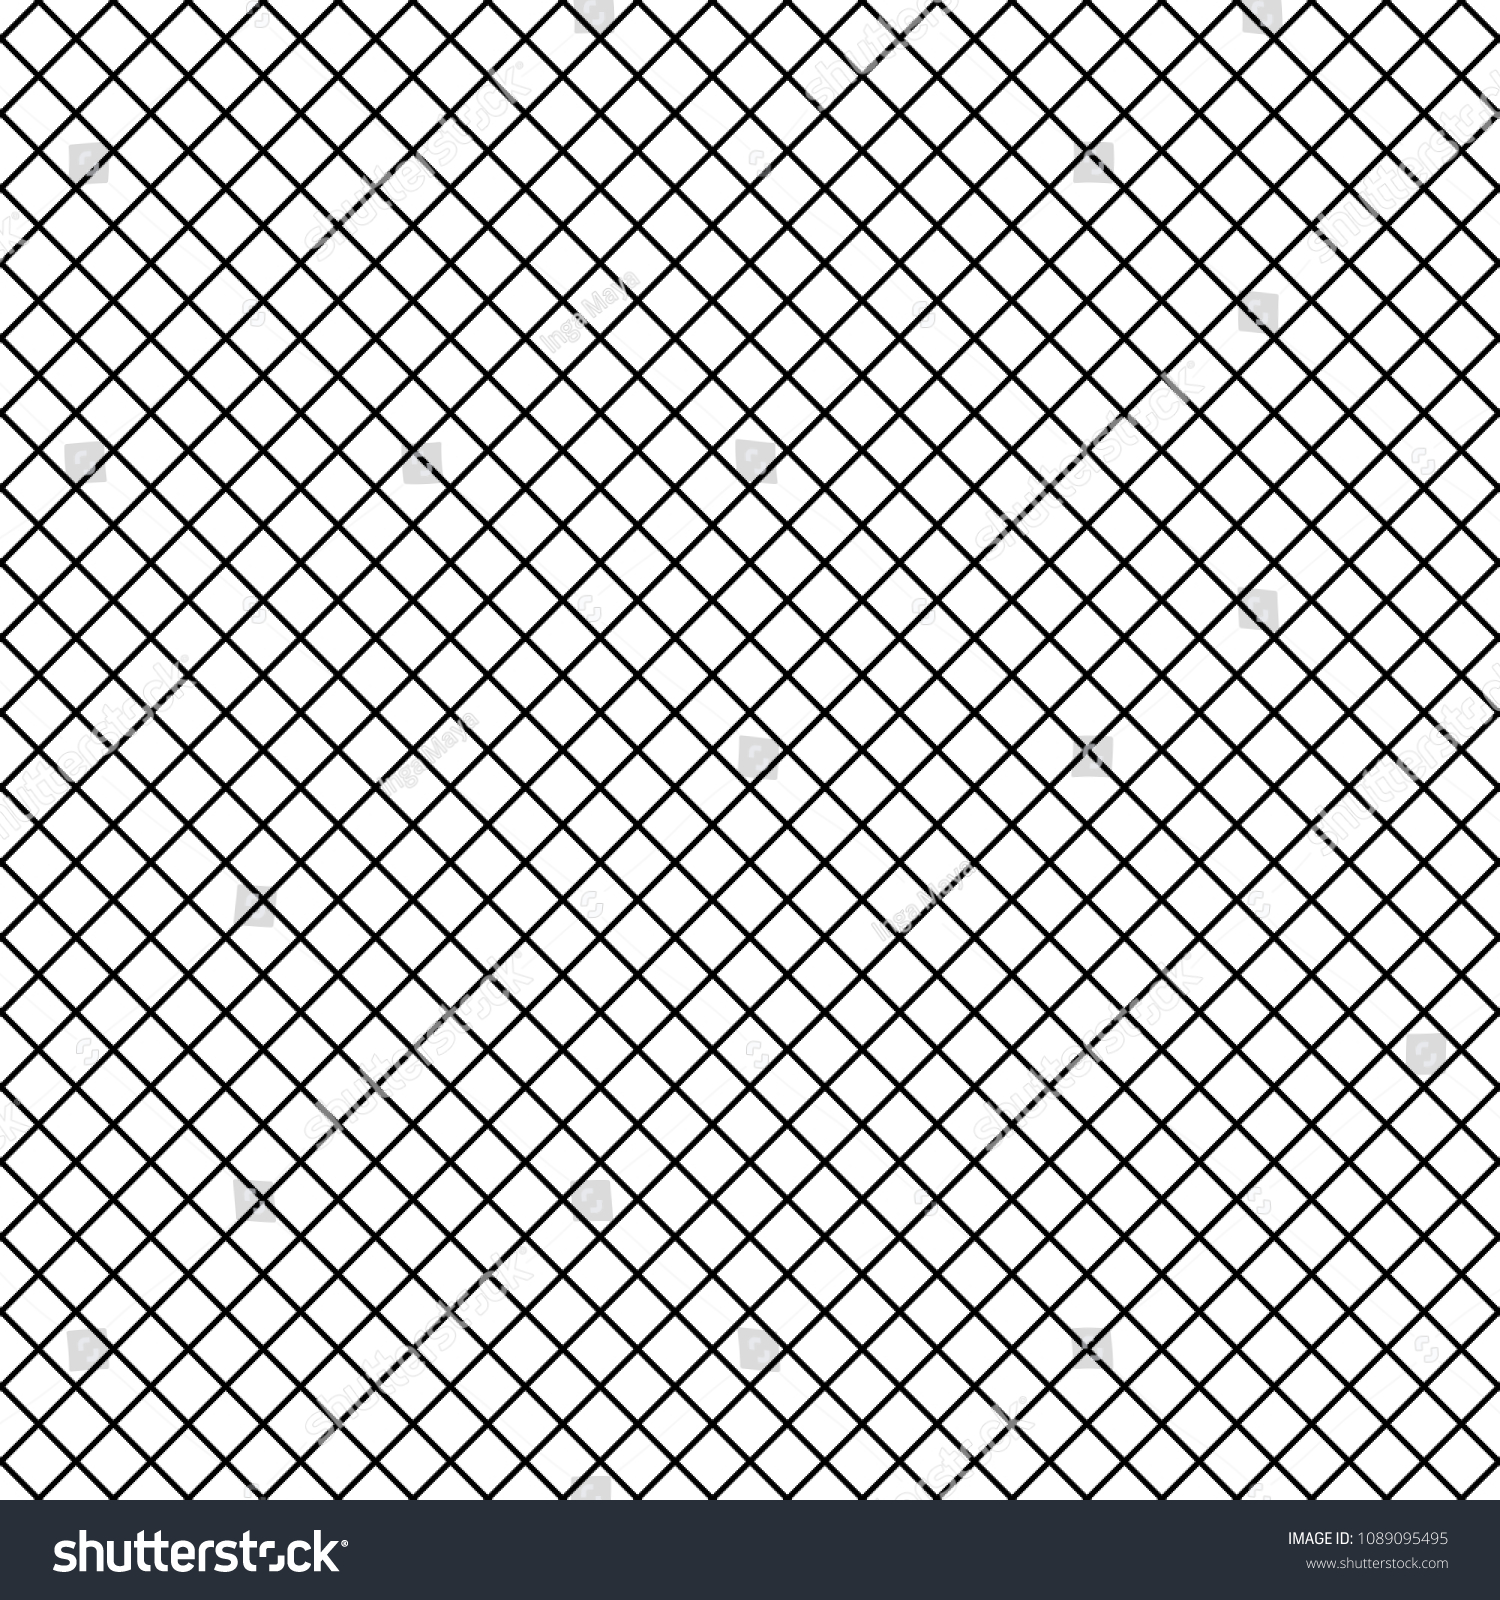 765d69588 Vector Uniform Grid checkered fishnet tights seamless pattern. Black lines  isolated on white background.